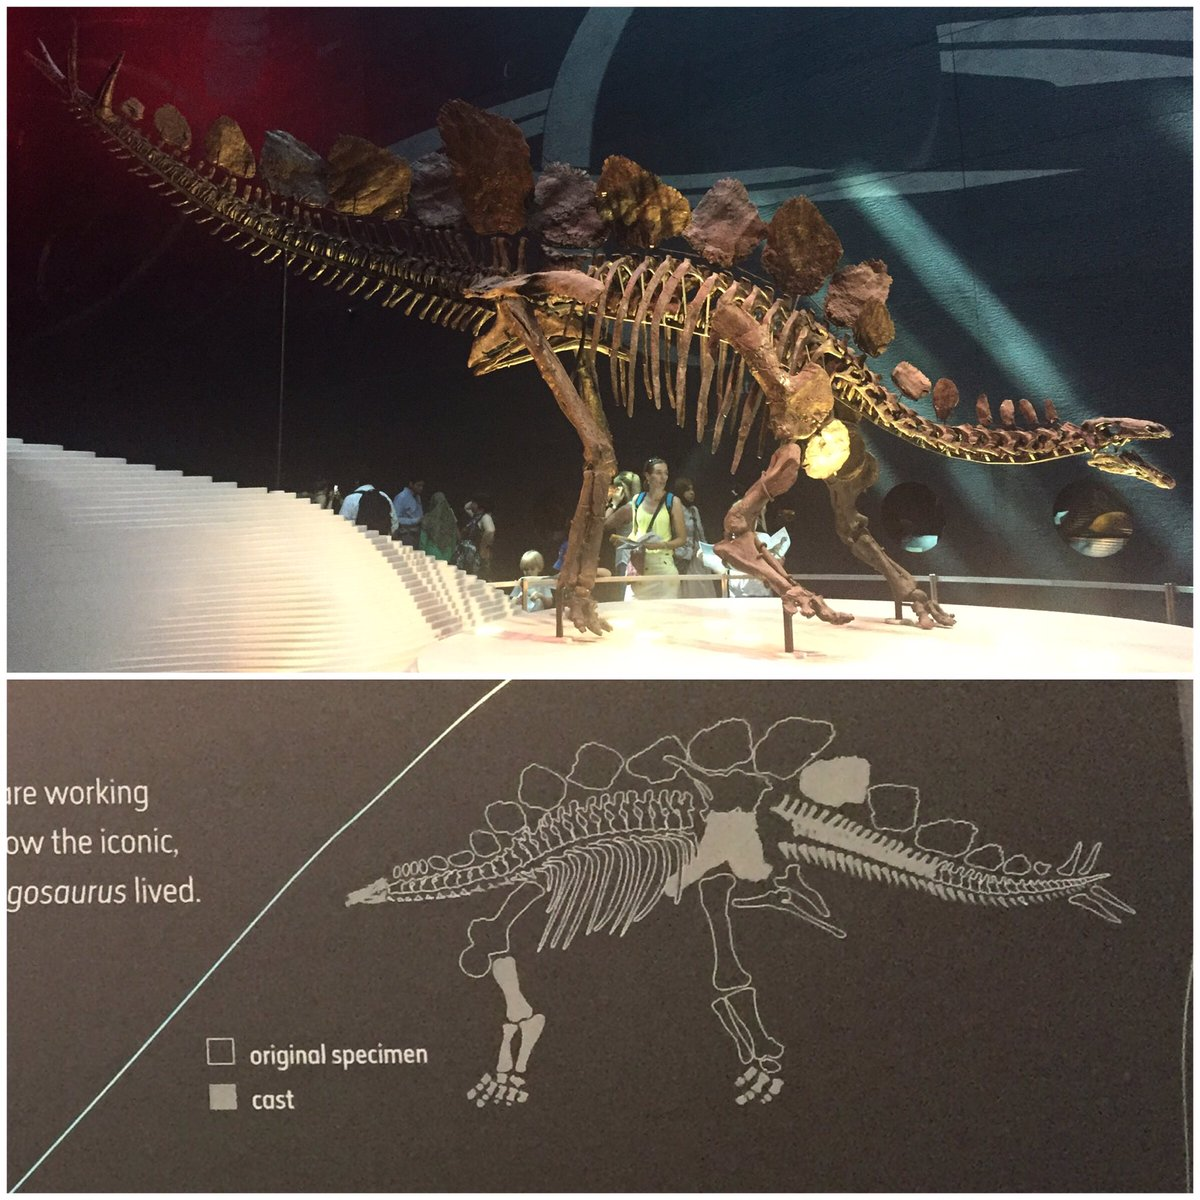 #FossilFriday Sophie, the most complete stegosaurus ever found, at @NHM_London. https://t.co/aCvgb4GJbs